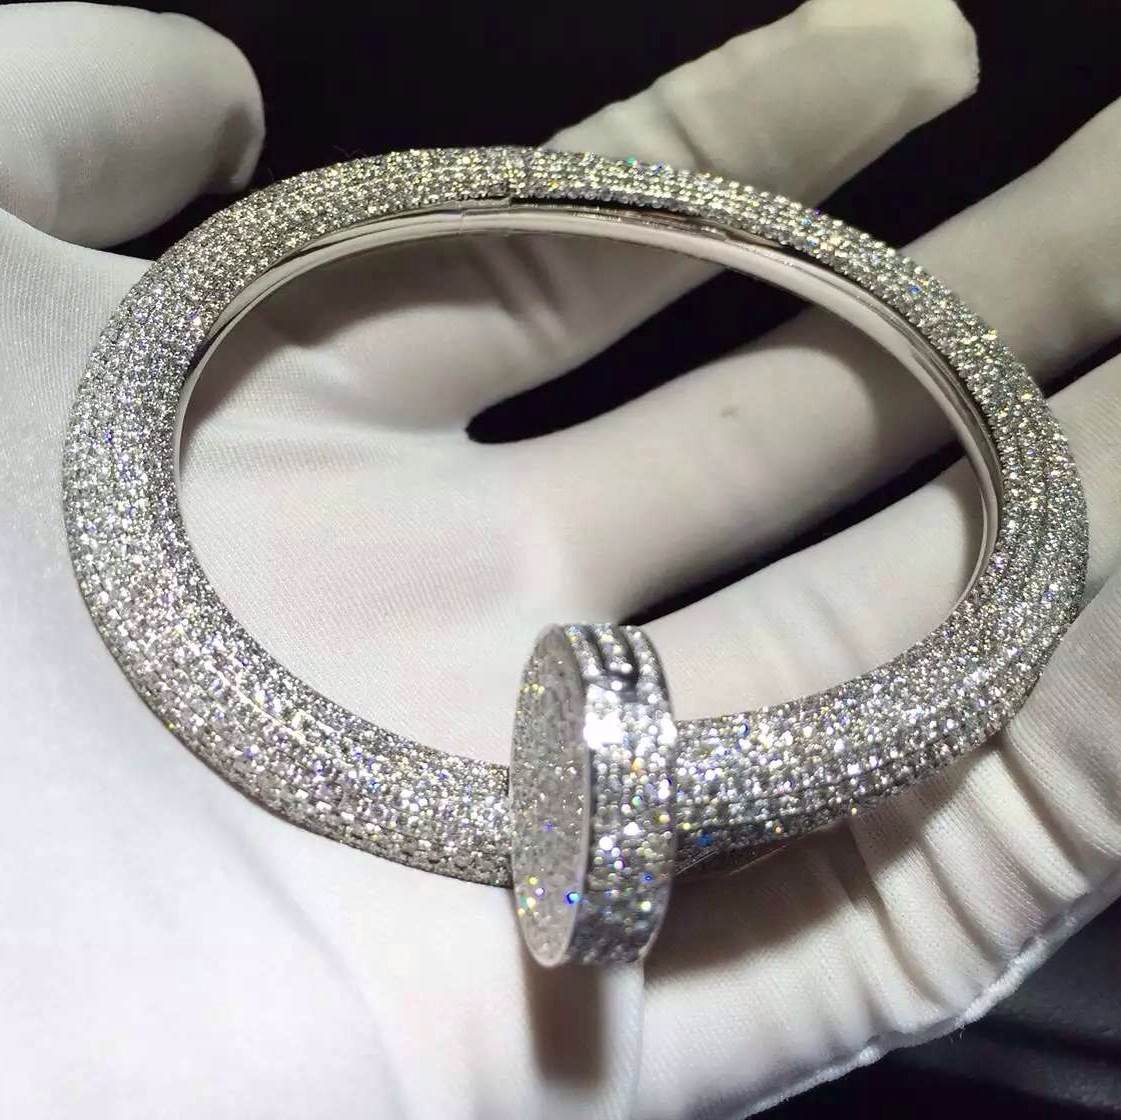 18K white gold Cartier Juste un Clou Nail Bracelet Paved 1752 Diamonds